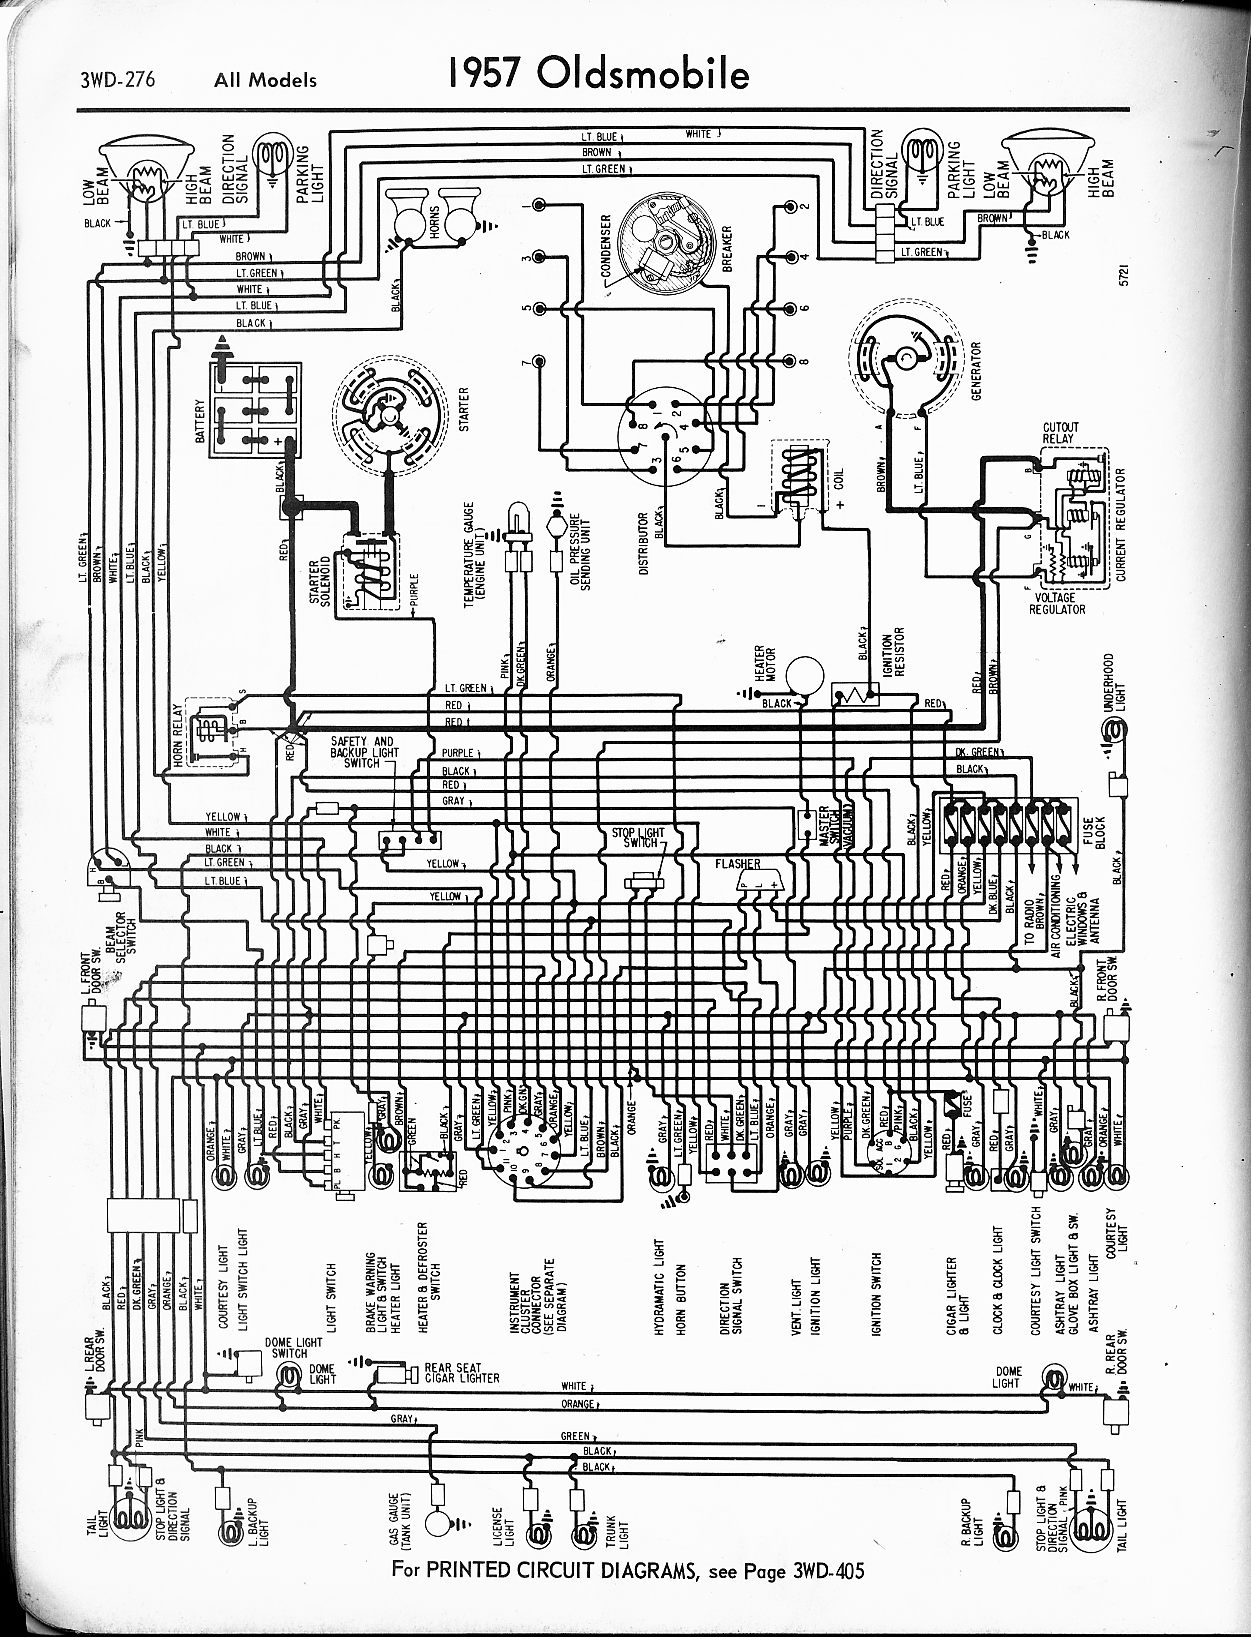 1967 oldsmobile cutlass wiring diagram wiring diagrams 94 oldsmobile cutl supreme wiring